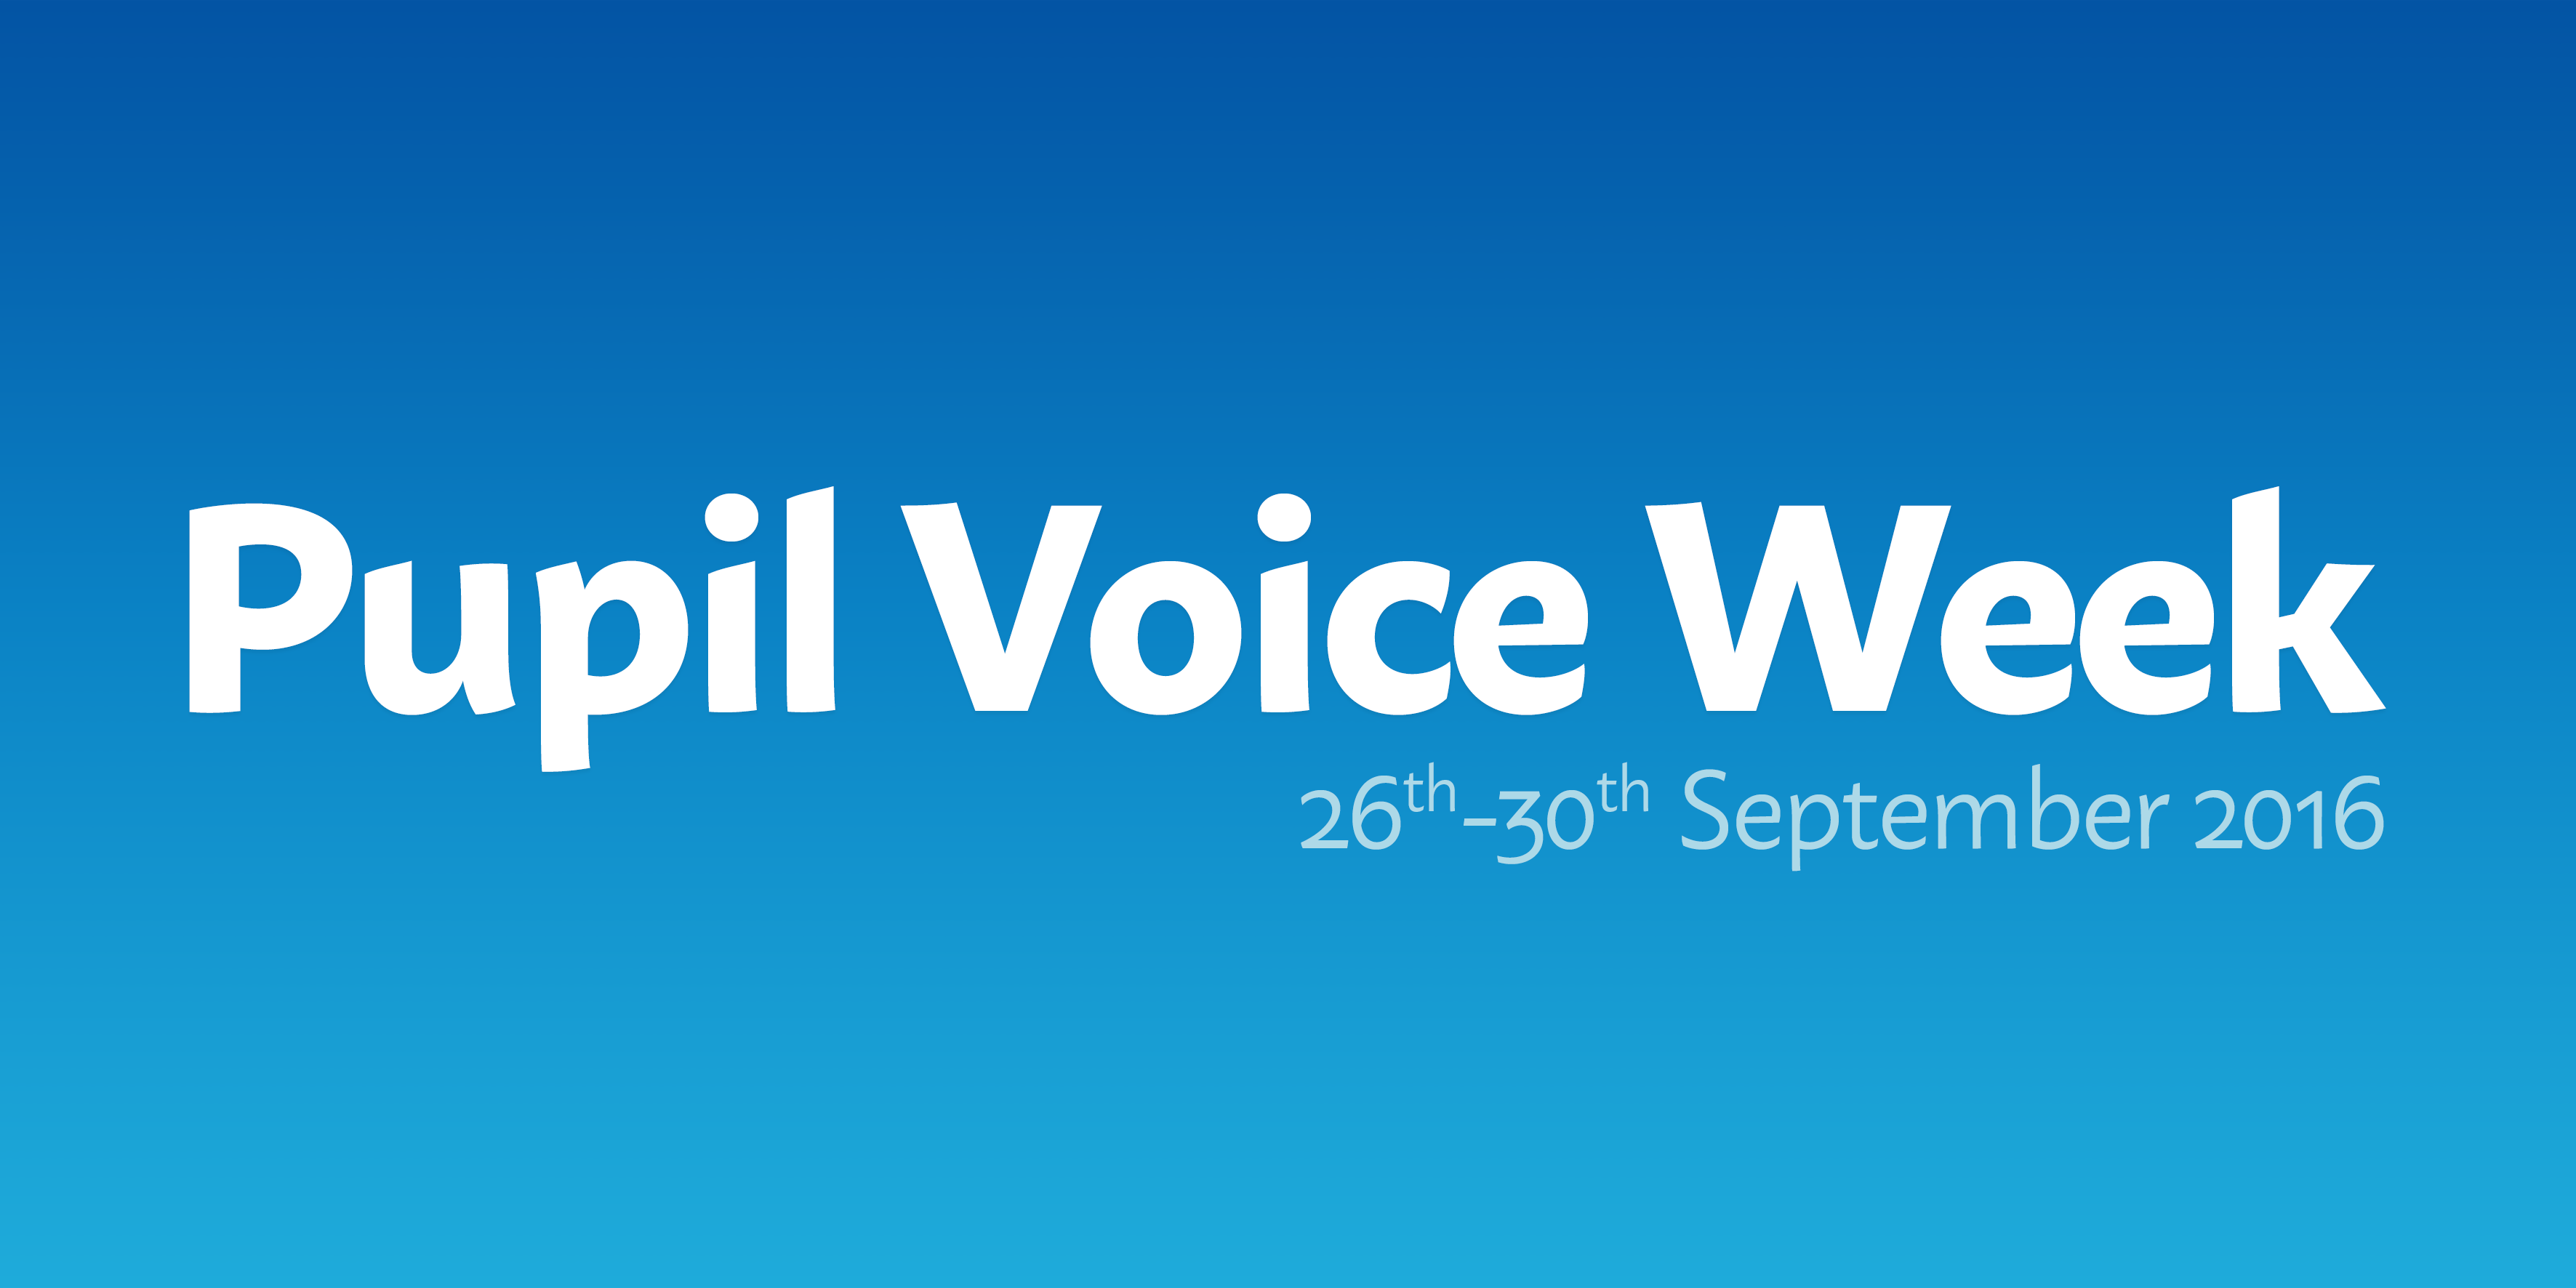 Pupil Voice Week